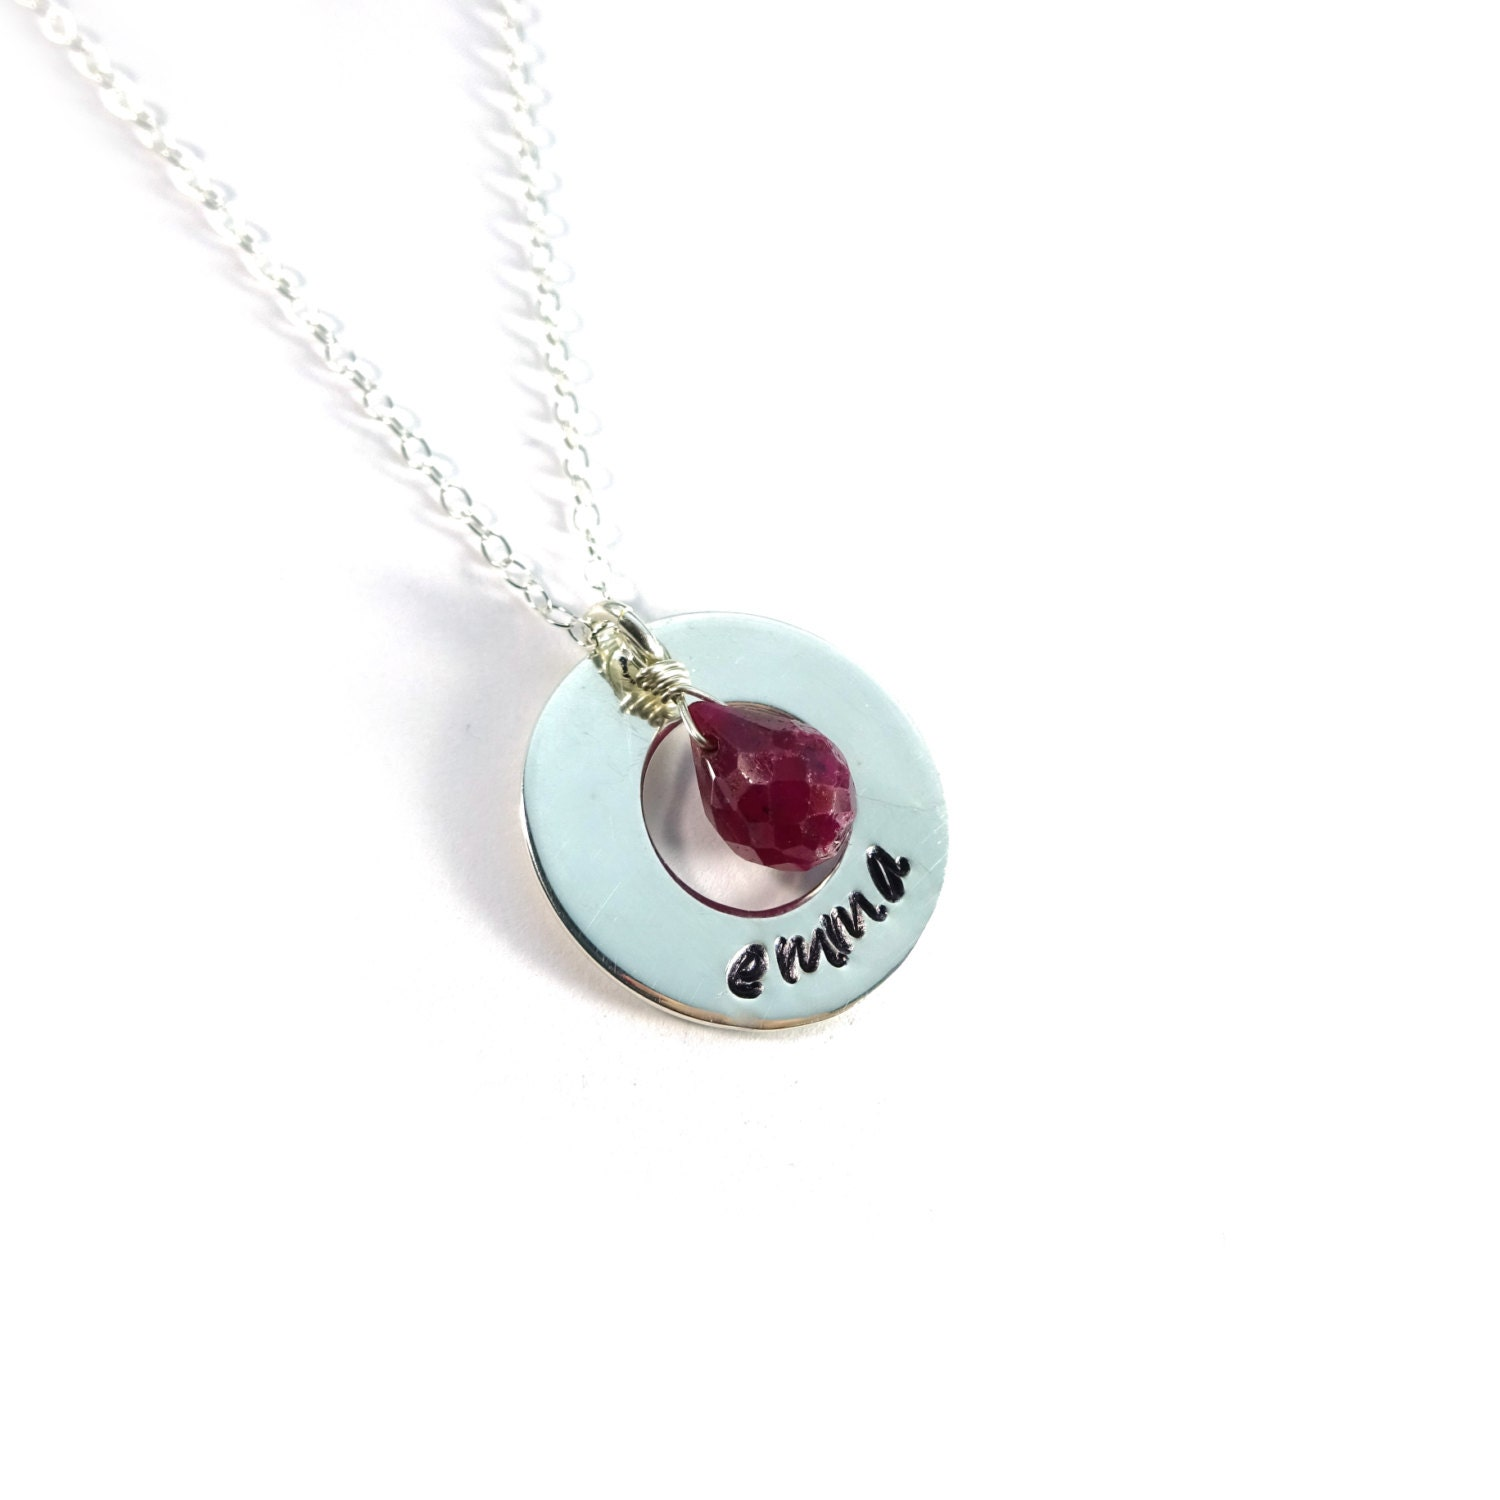 silver circle necklace silver name necklace birthstone